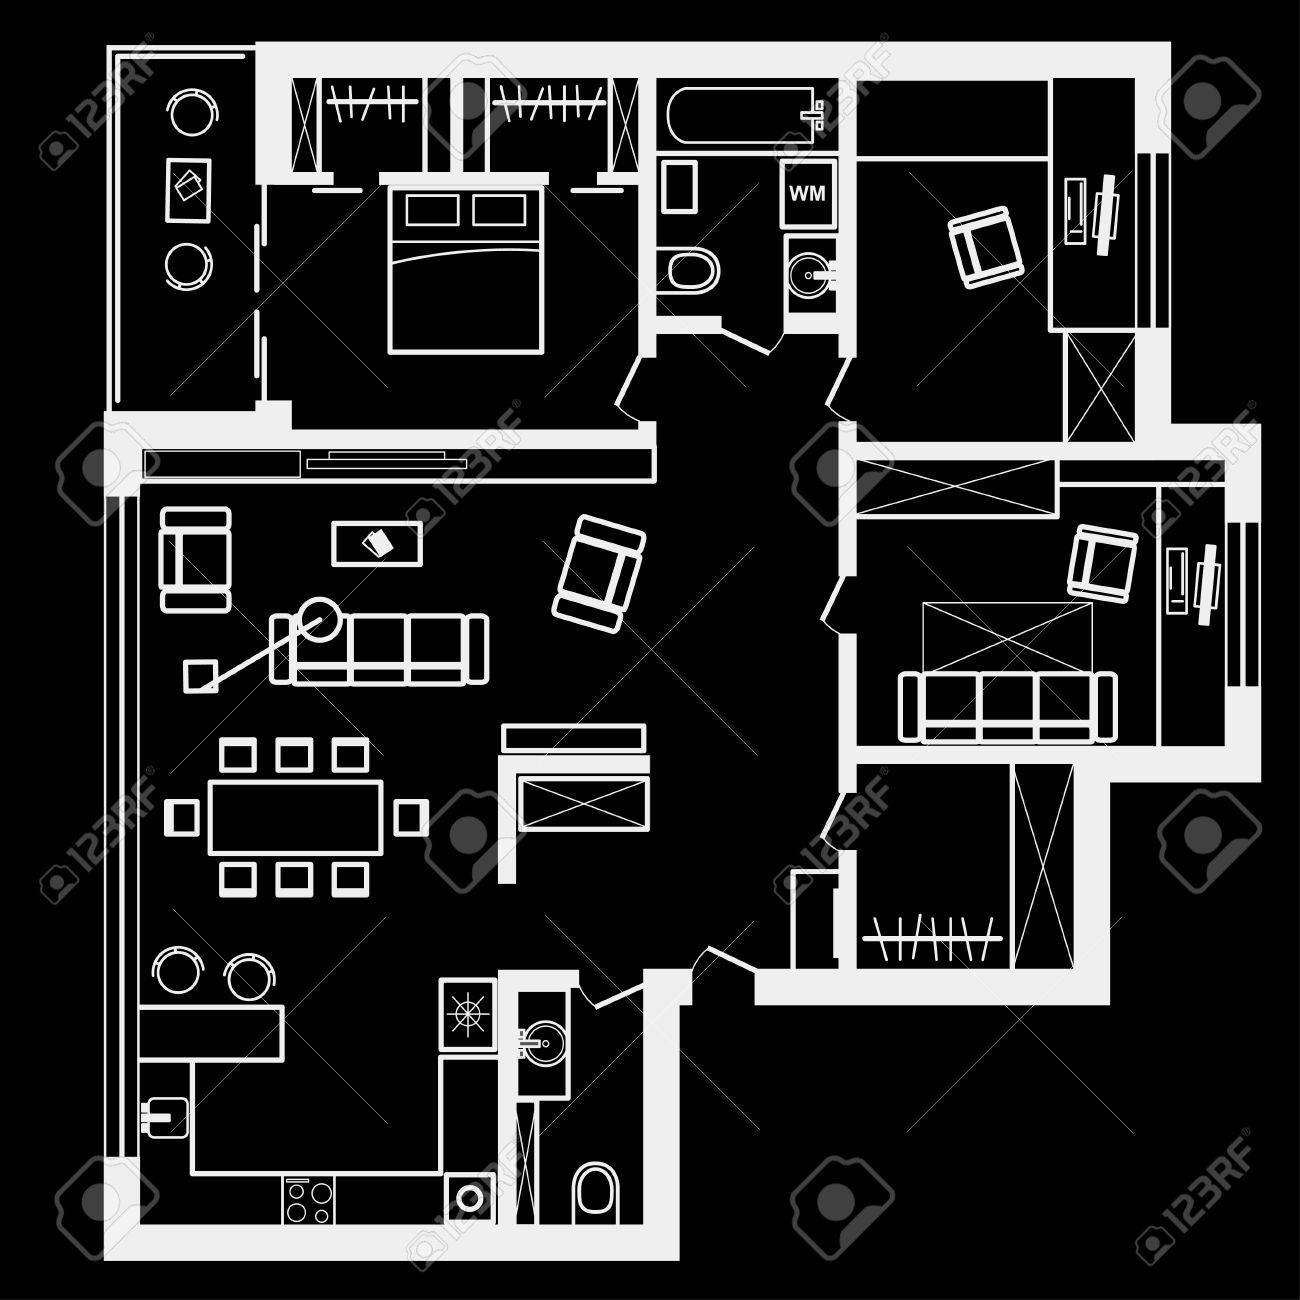 Linear Architectural Sketch Plan Of Three Bedroom Apartment On Black Background Stock Vector